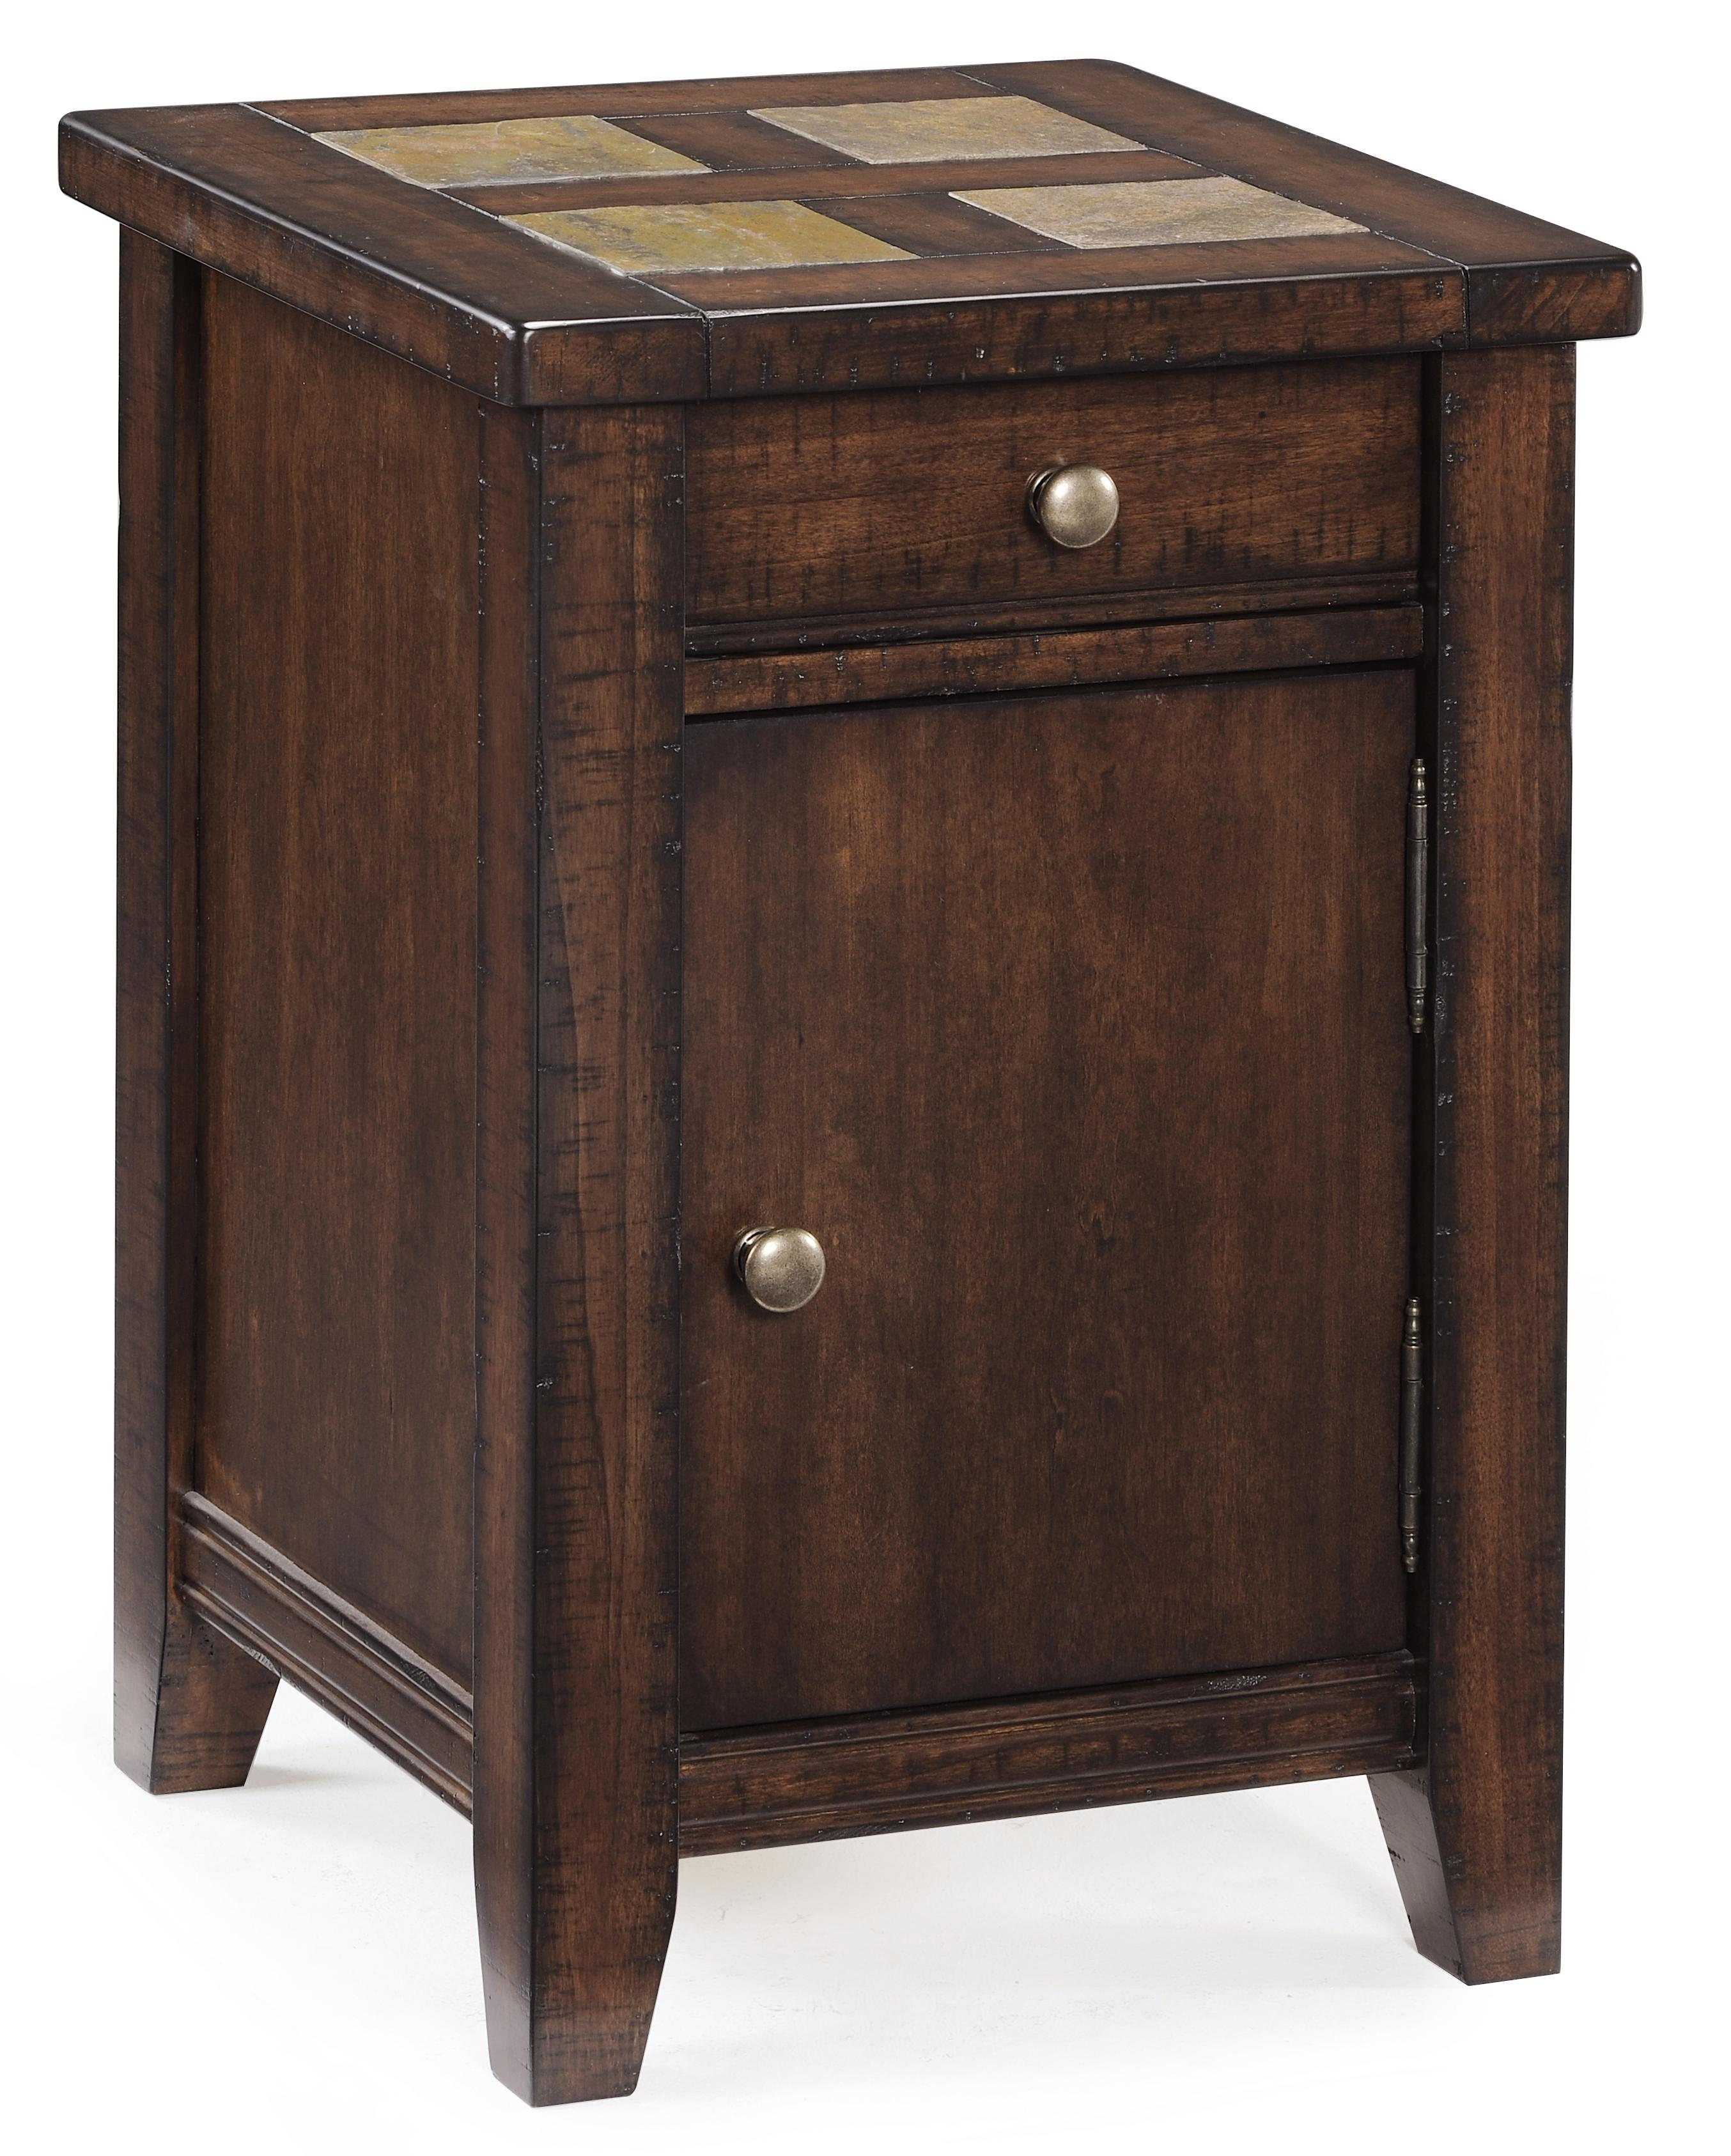 Magnussen Home Allister Square Accent Cabinet - Item Number: T1810-33